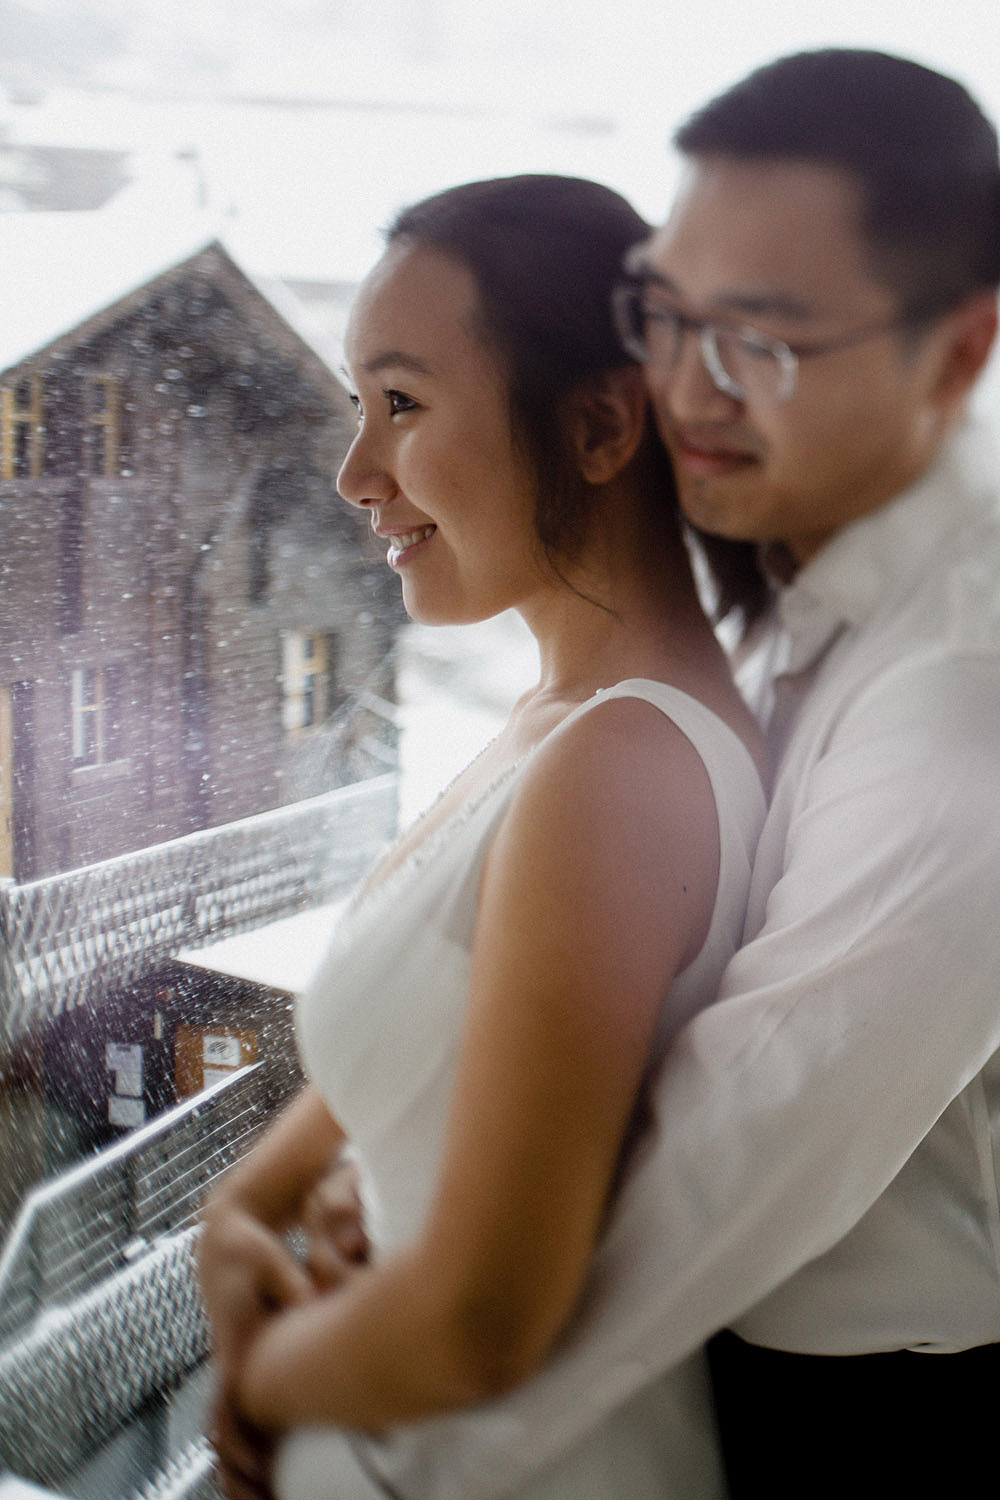 Engagement Session in the snow in Zermatt Switzerland :: Luxury wedding photography - 8